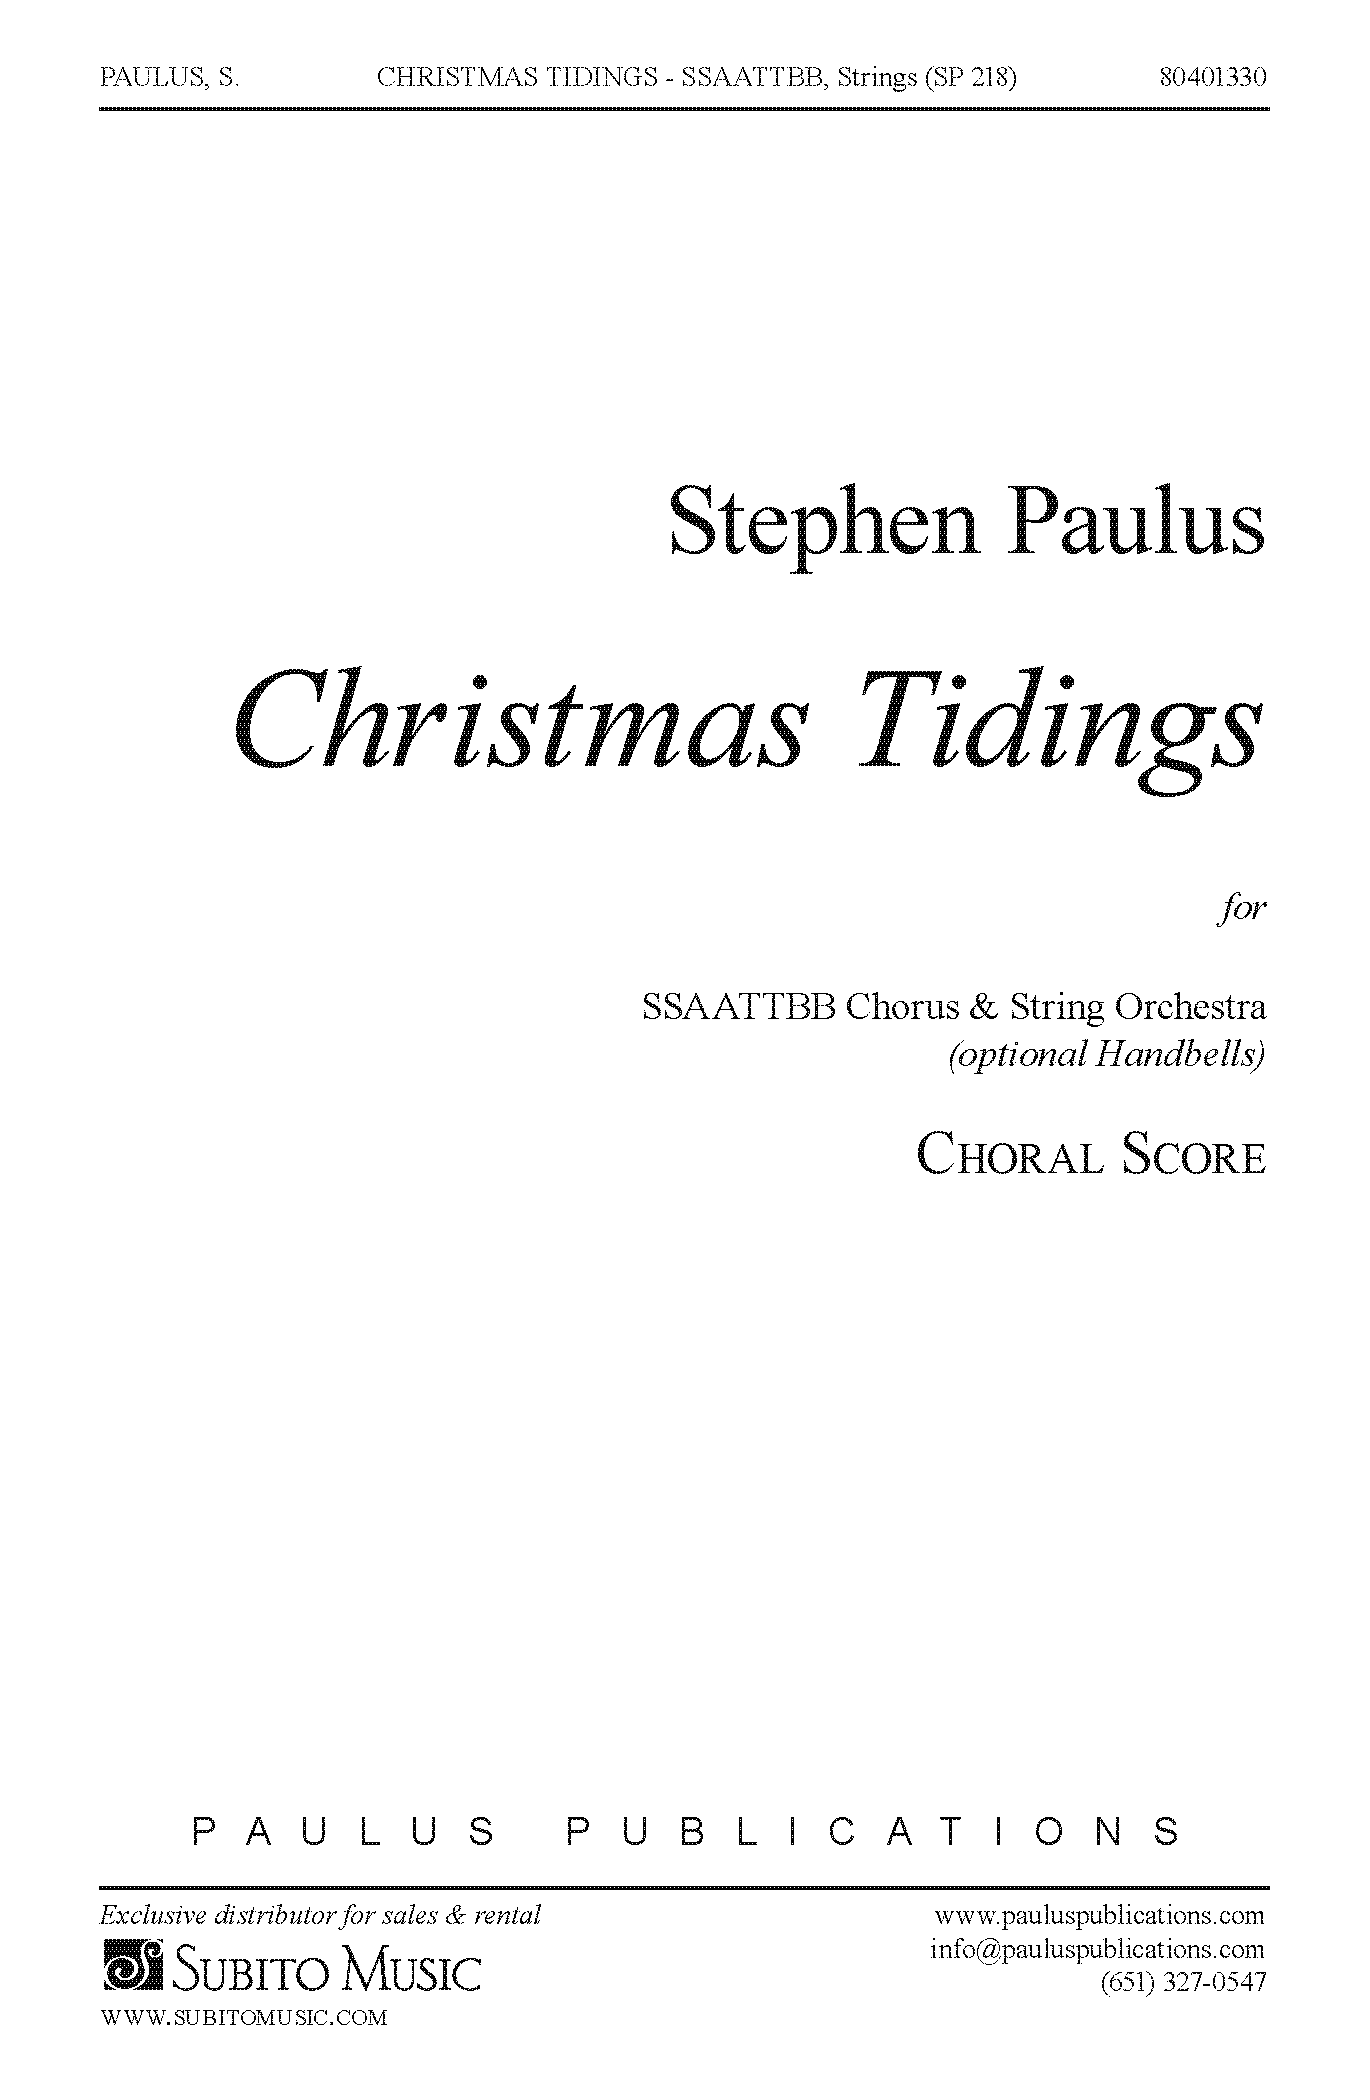 Christmas Tidings for SSAATTBB Chorus & String Orchestra